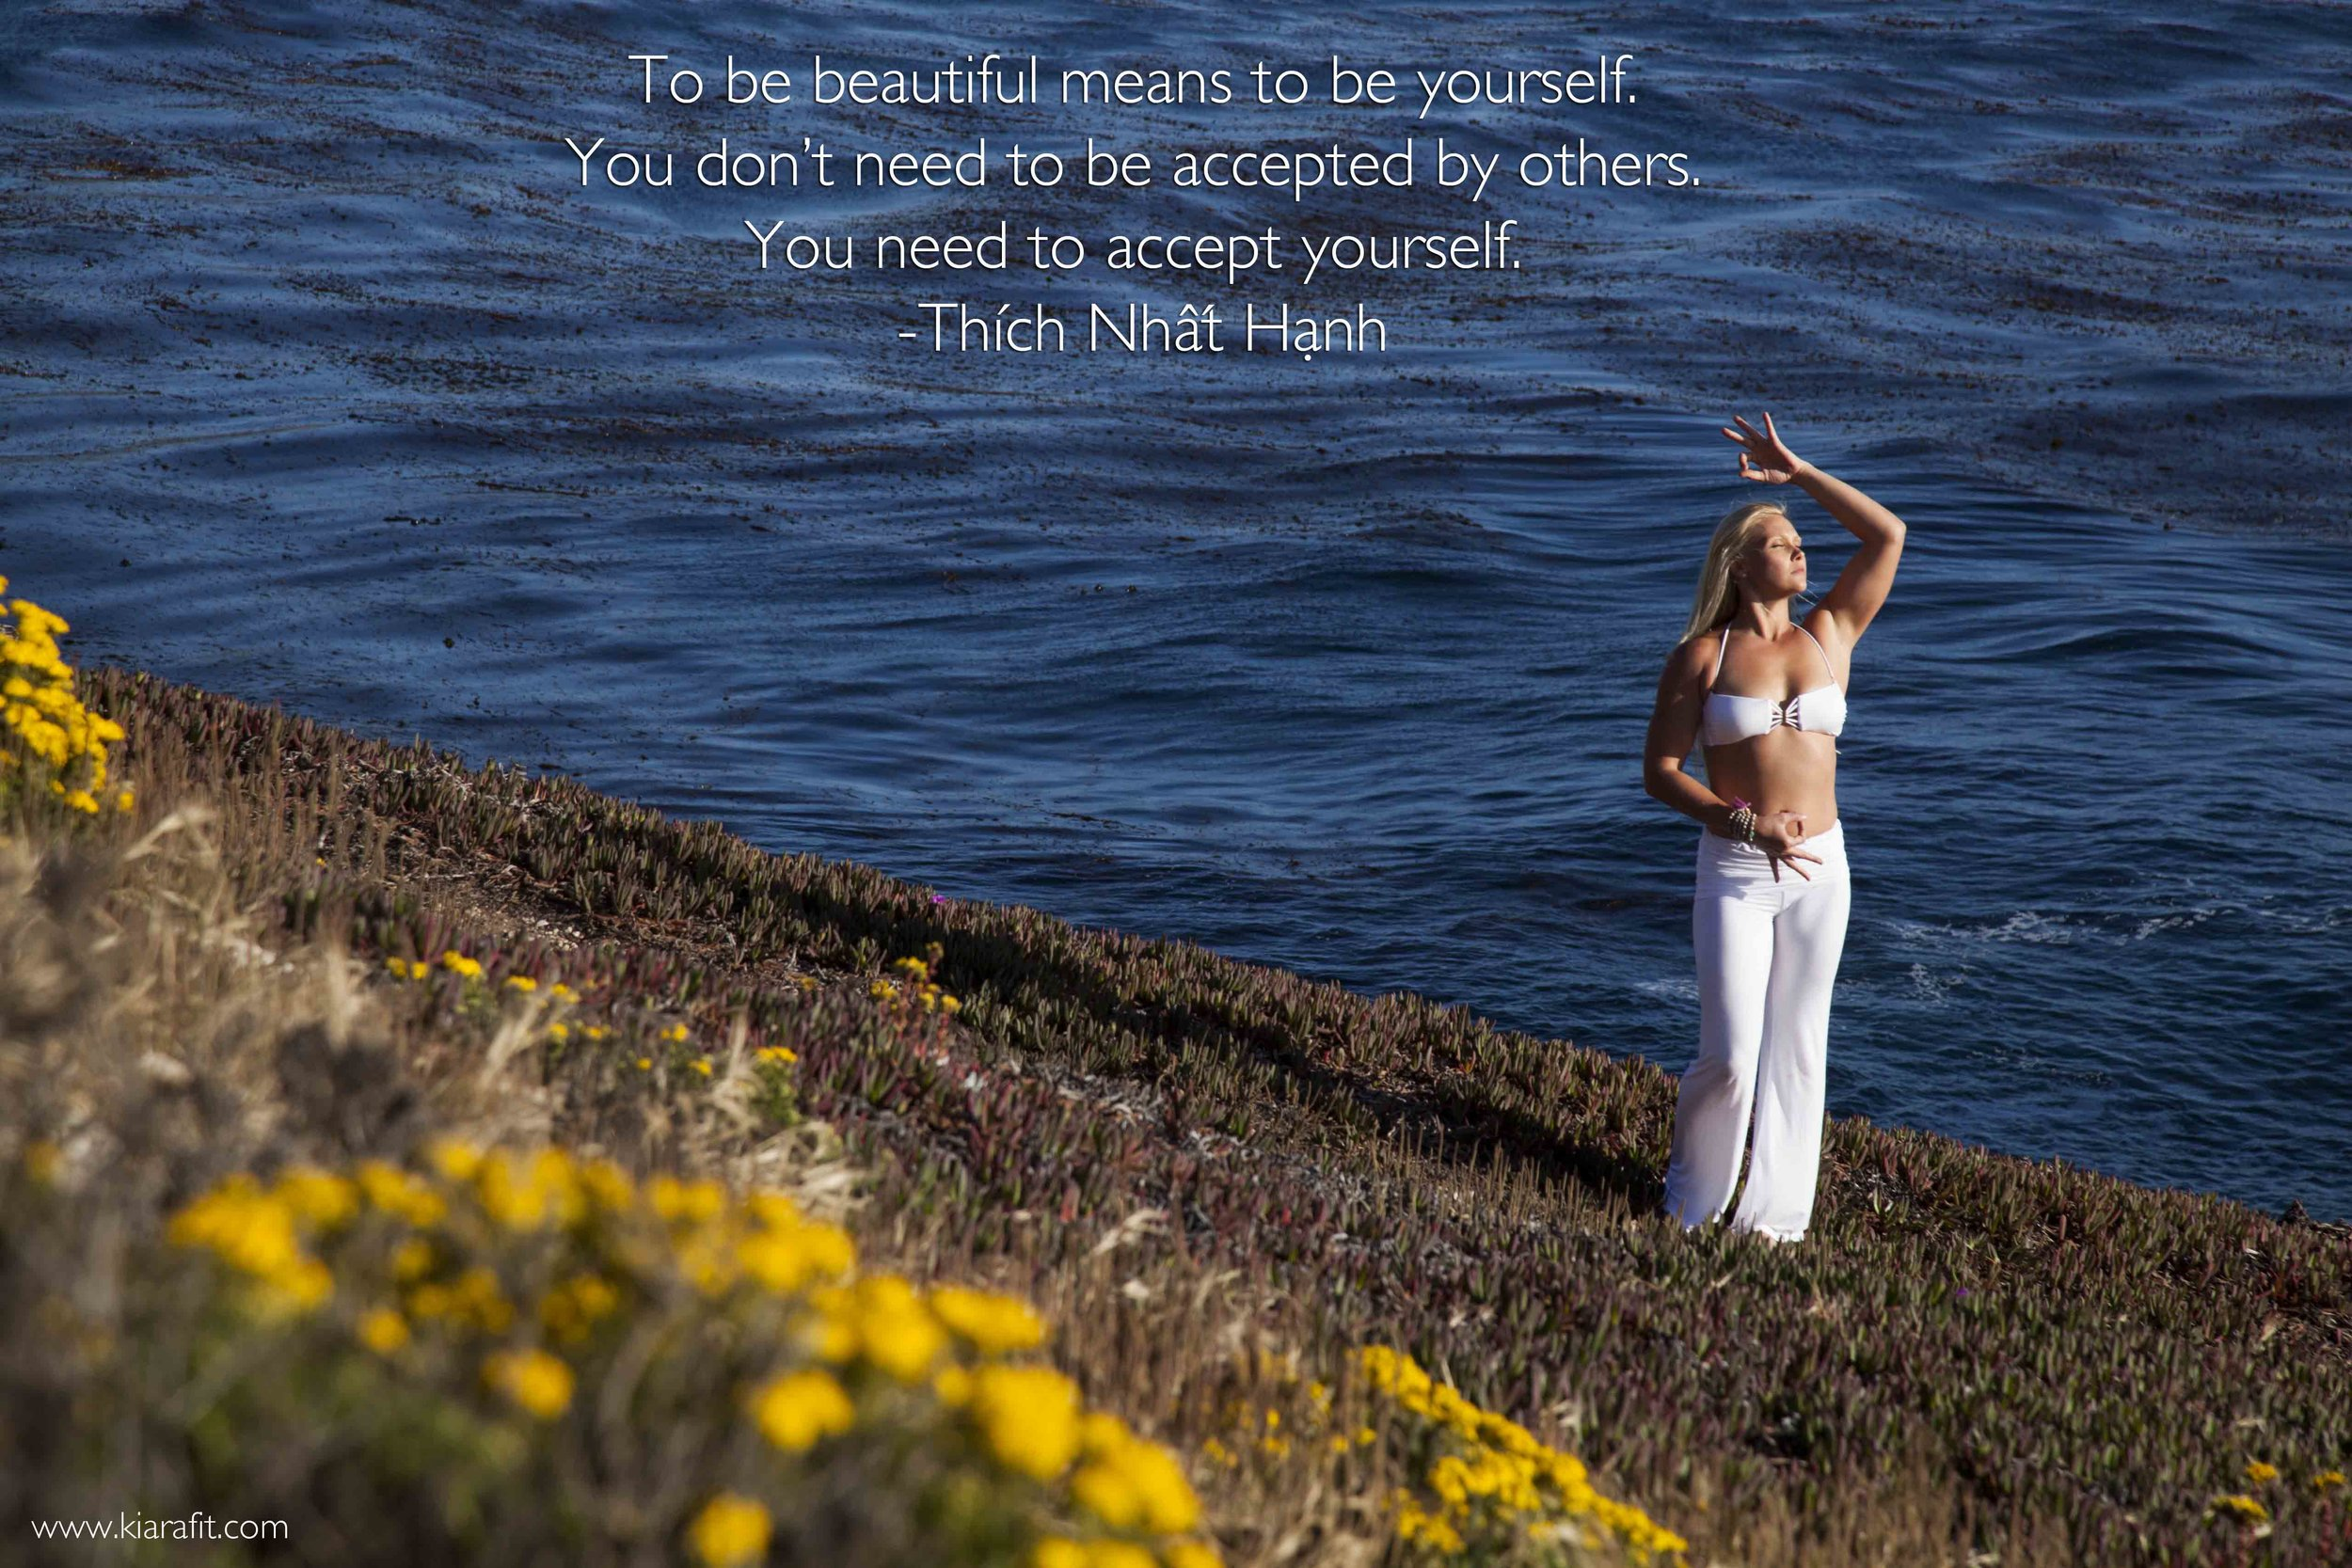 accept yourself Thich Nhat Hanh